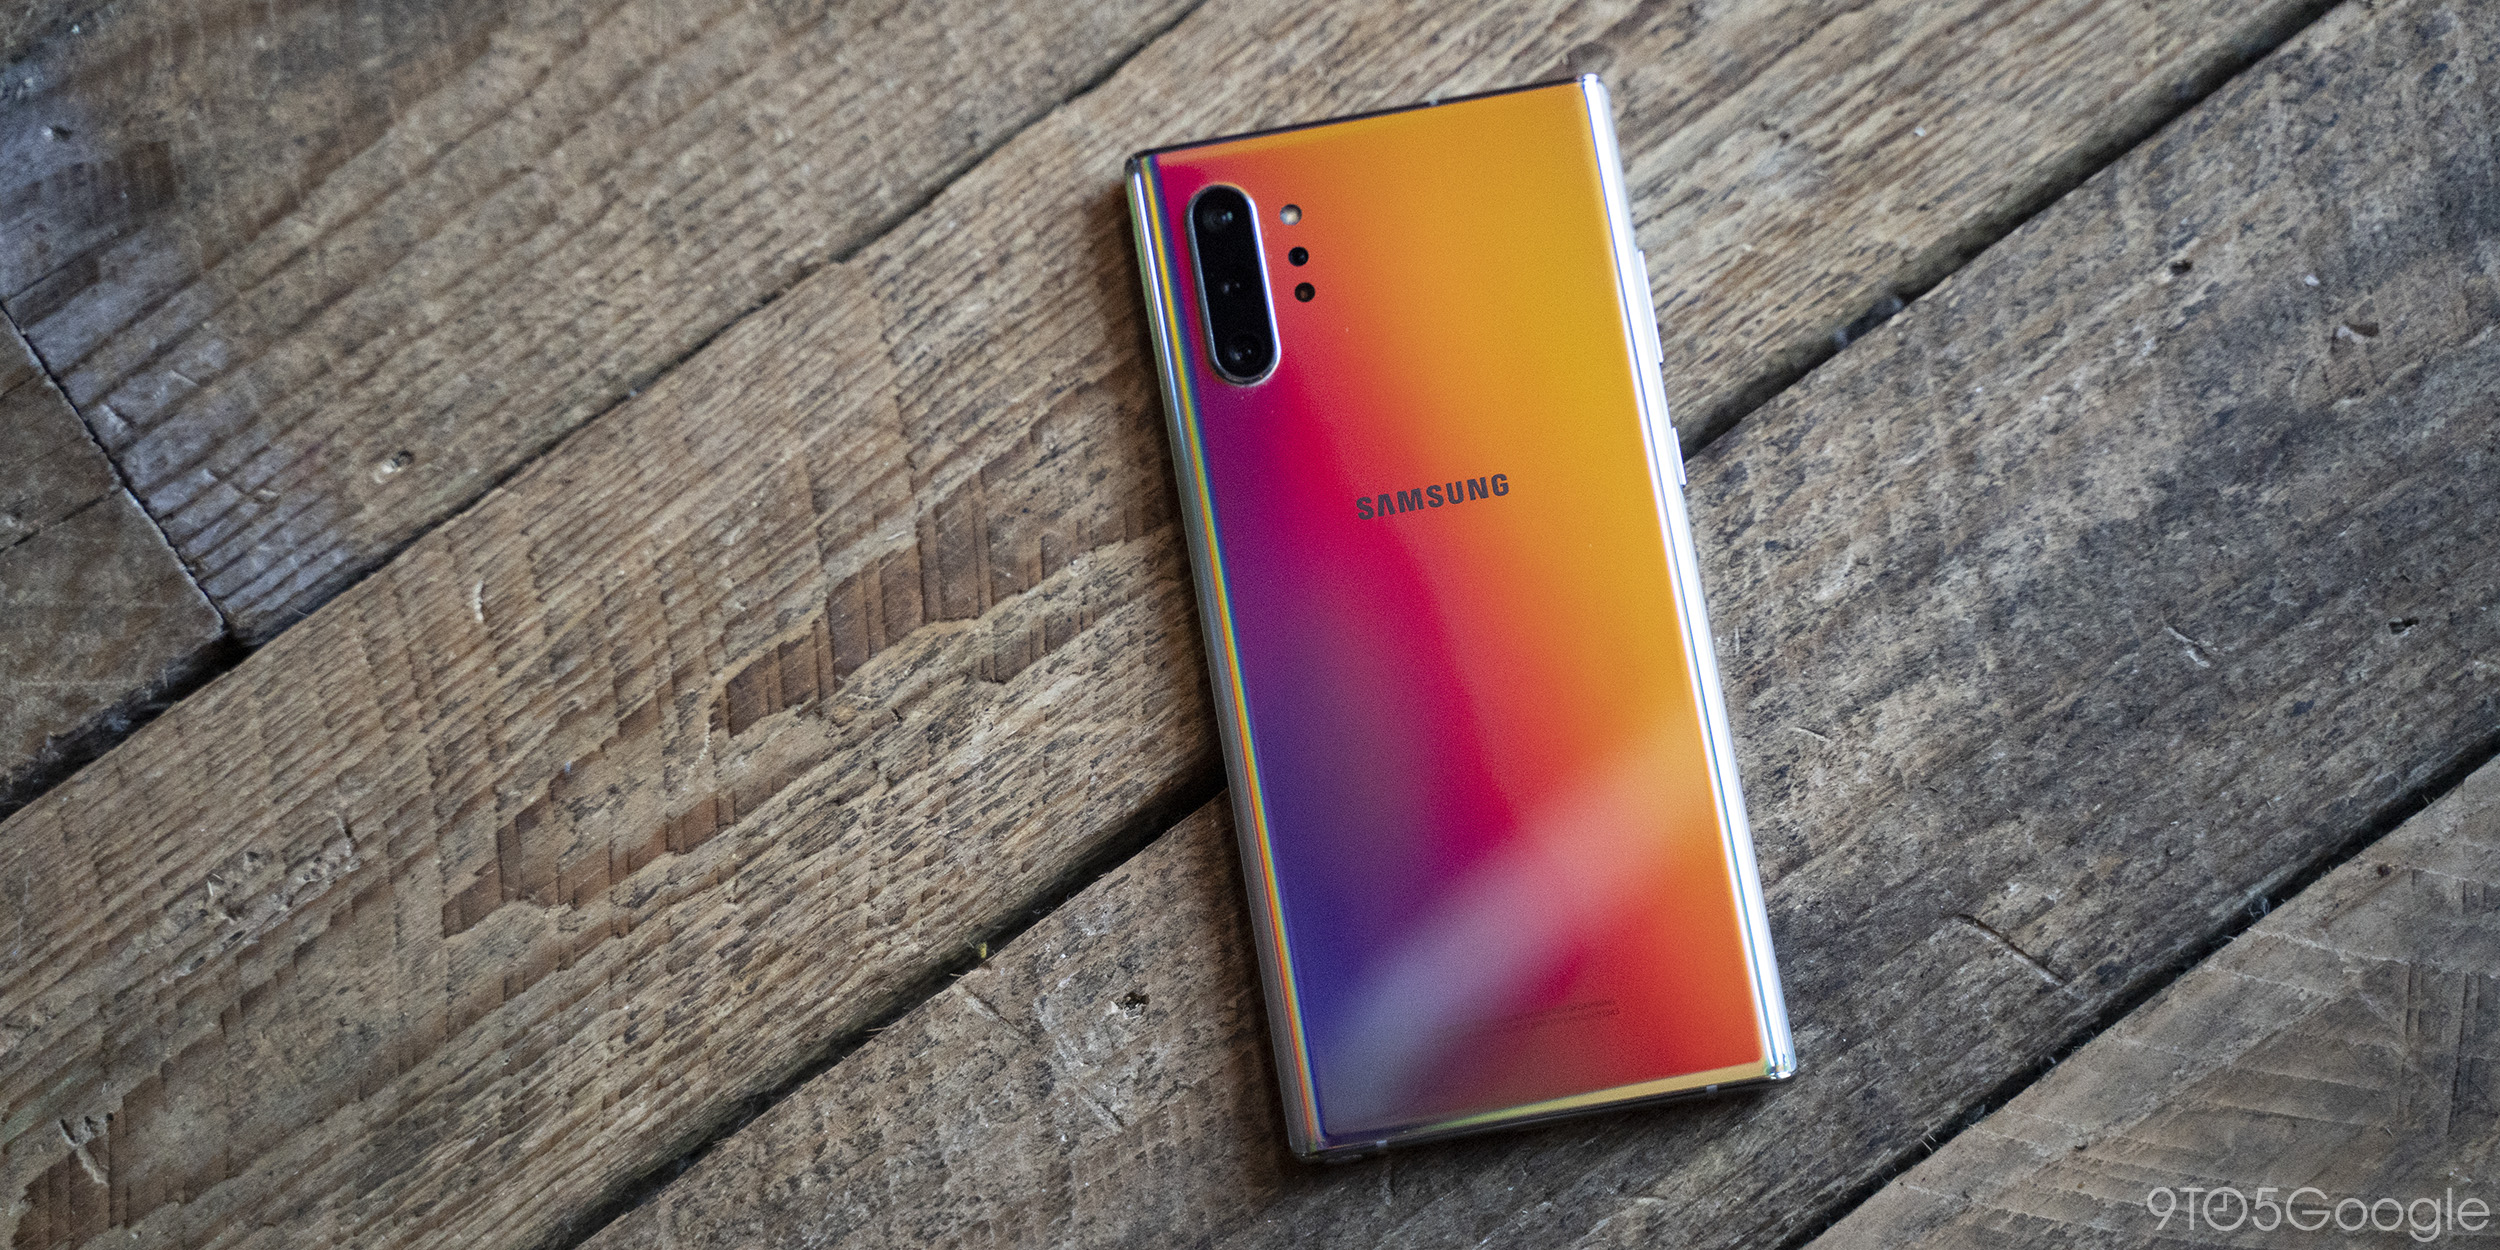 Galaxy Note 10+: Does the S Pen justify an $1100 price